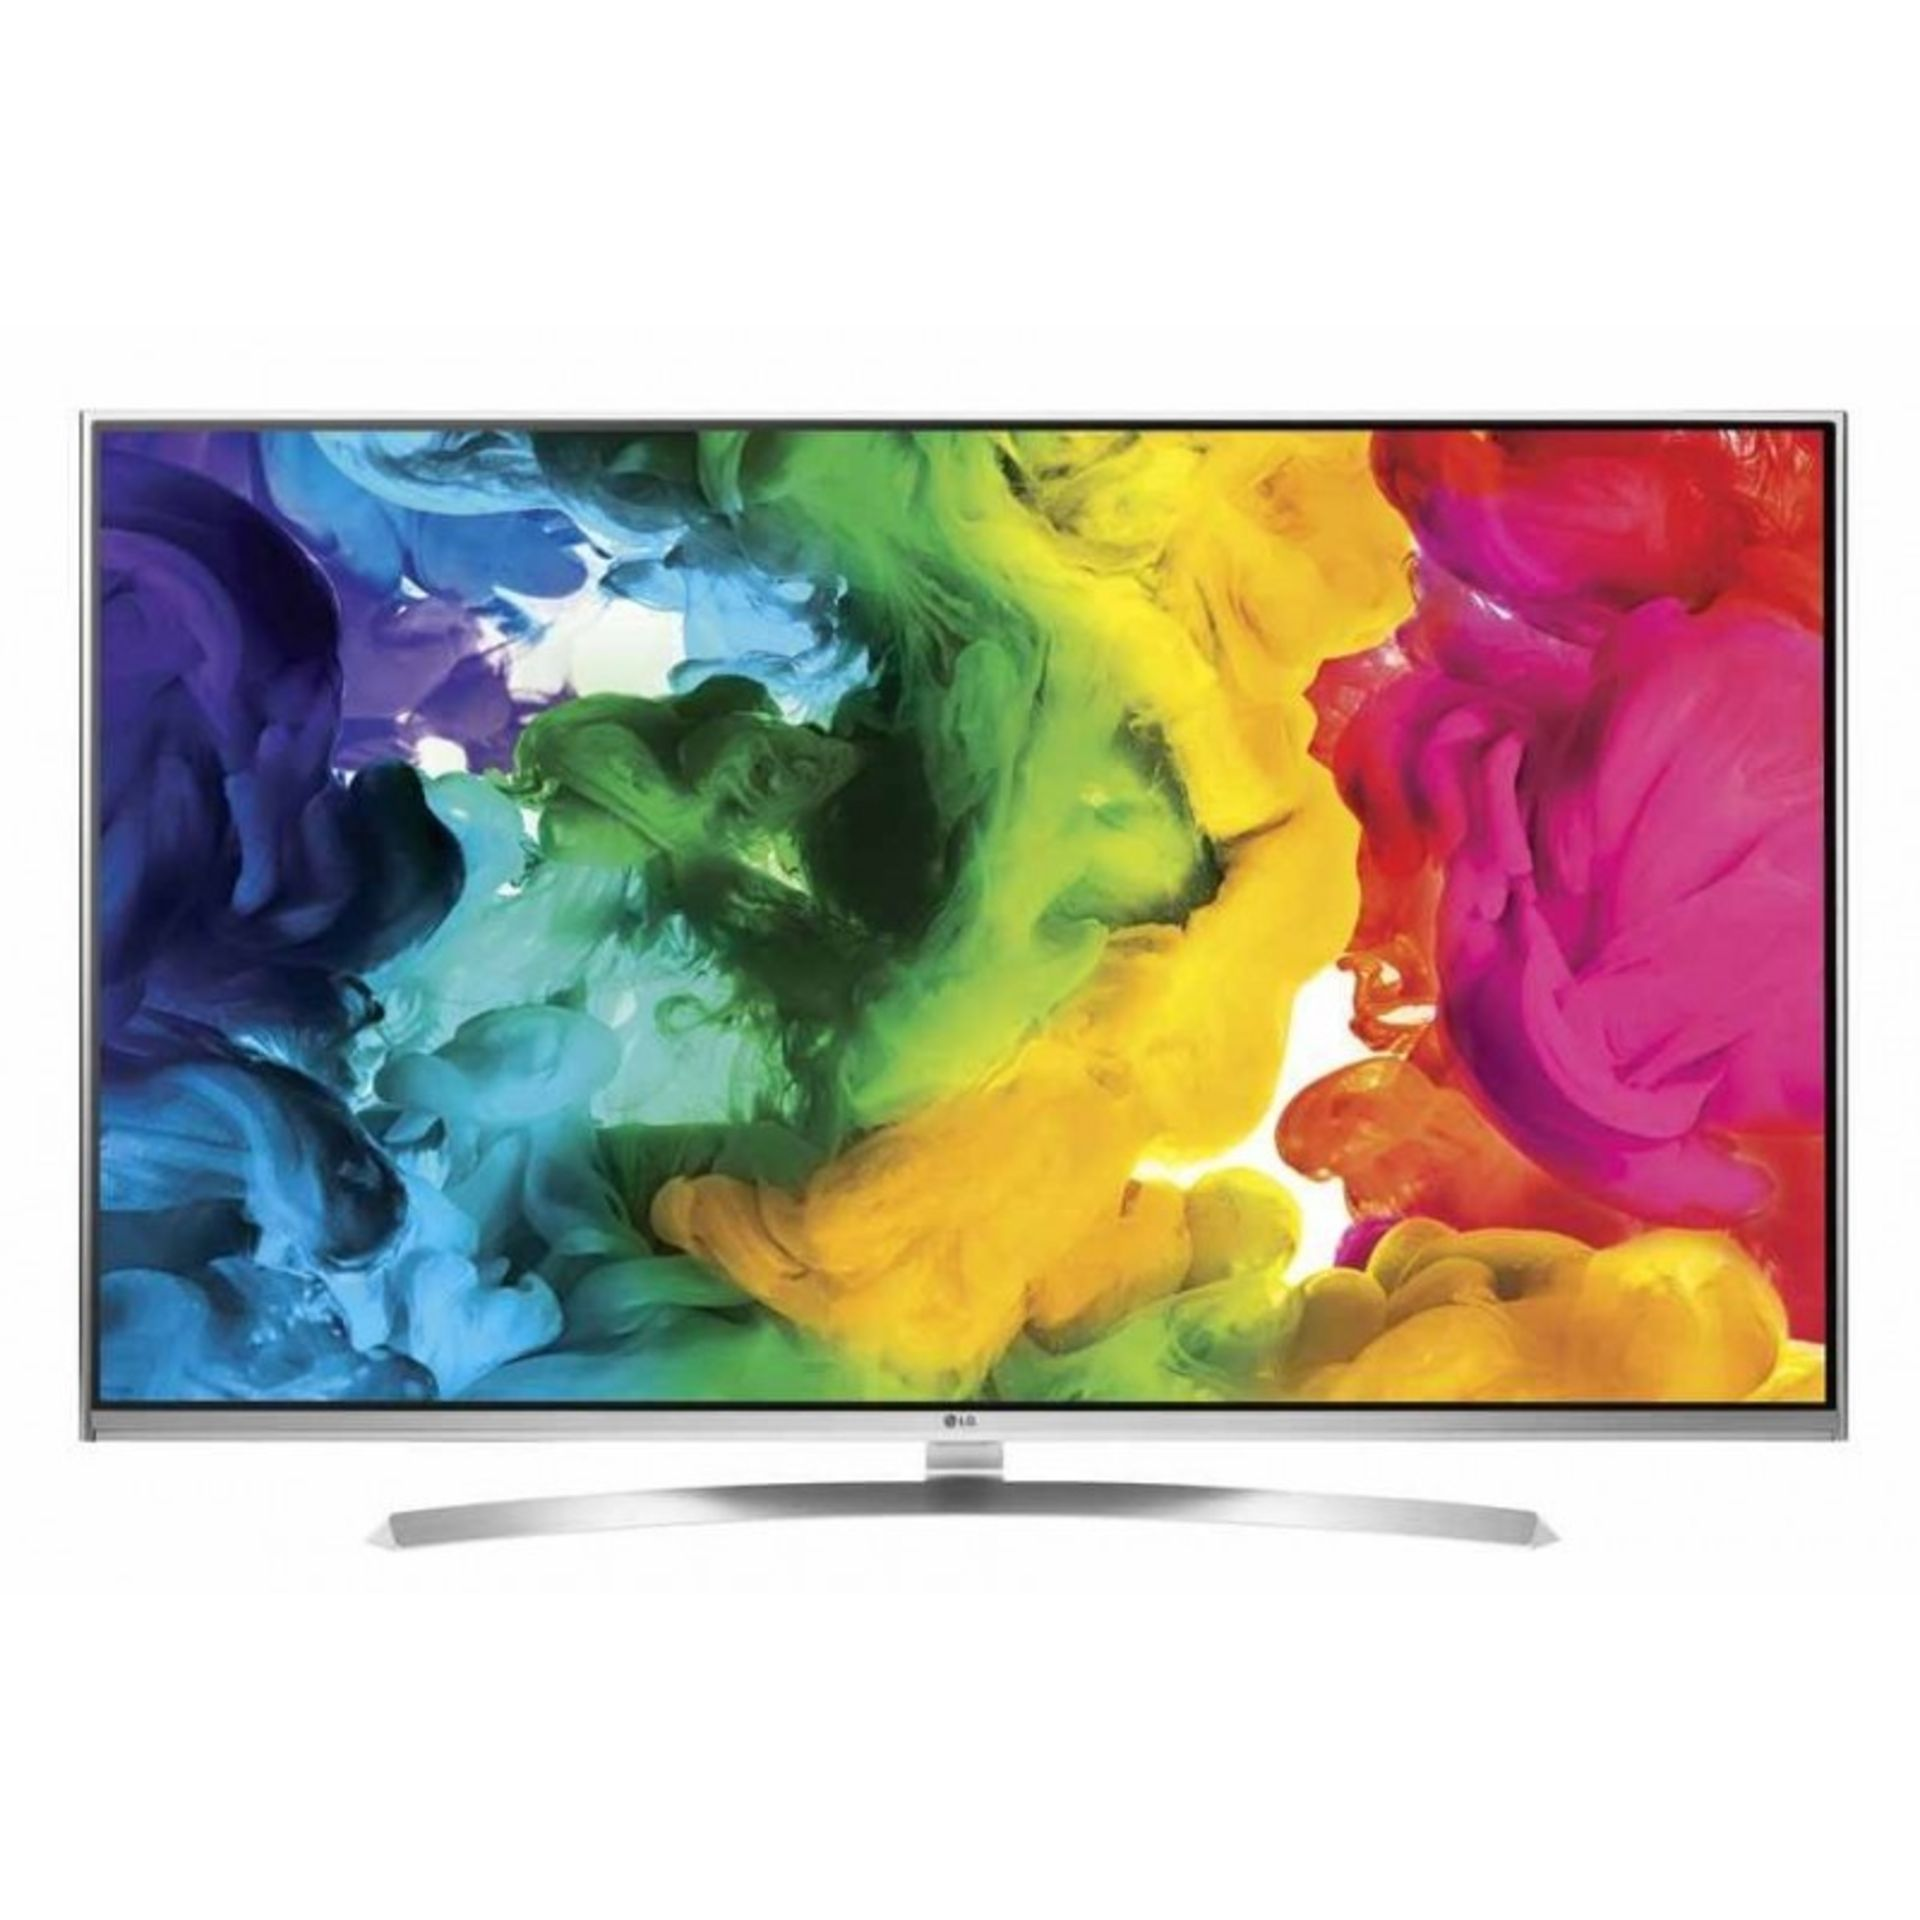 Lotto 30057 - V Grade A LG 55 Inch ACTIVE HDR 4K SUPER ULTRA HD NANO LED SMART TV WITH FREEVIEW HD & WEBOS 3.5 &